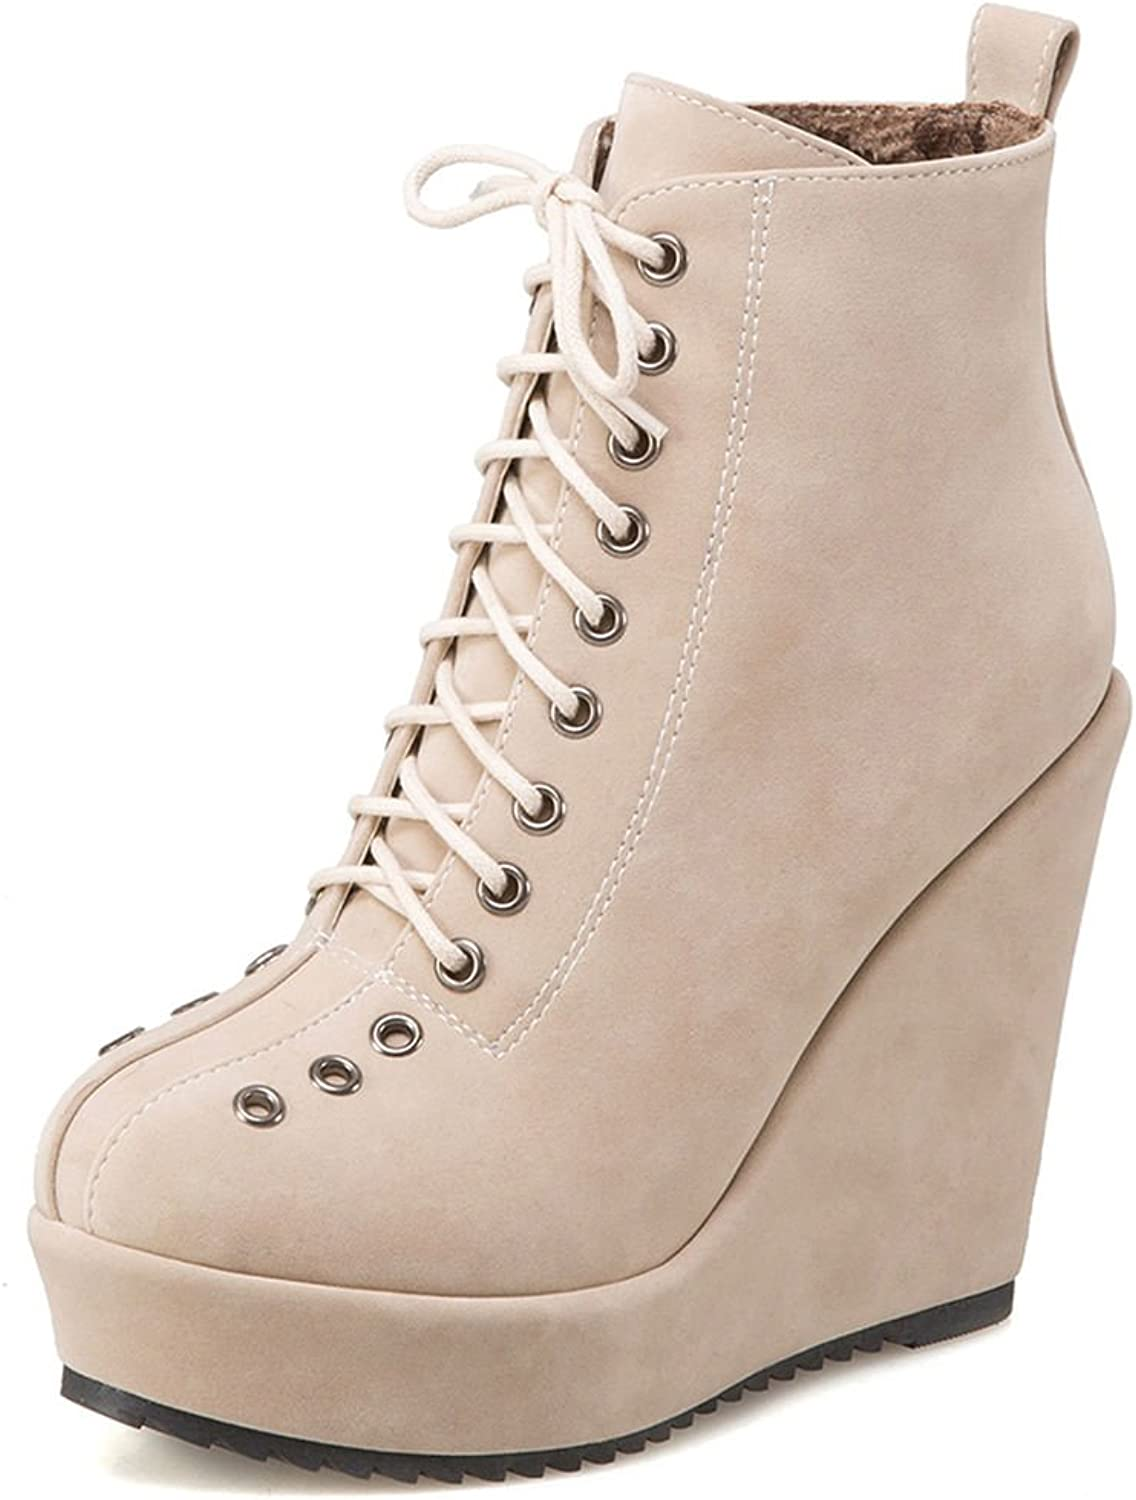 SaraIris Cross-Tied Platform Increased Inside Solid Ankle Boots for Women